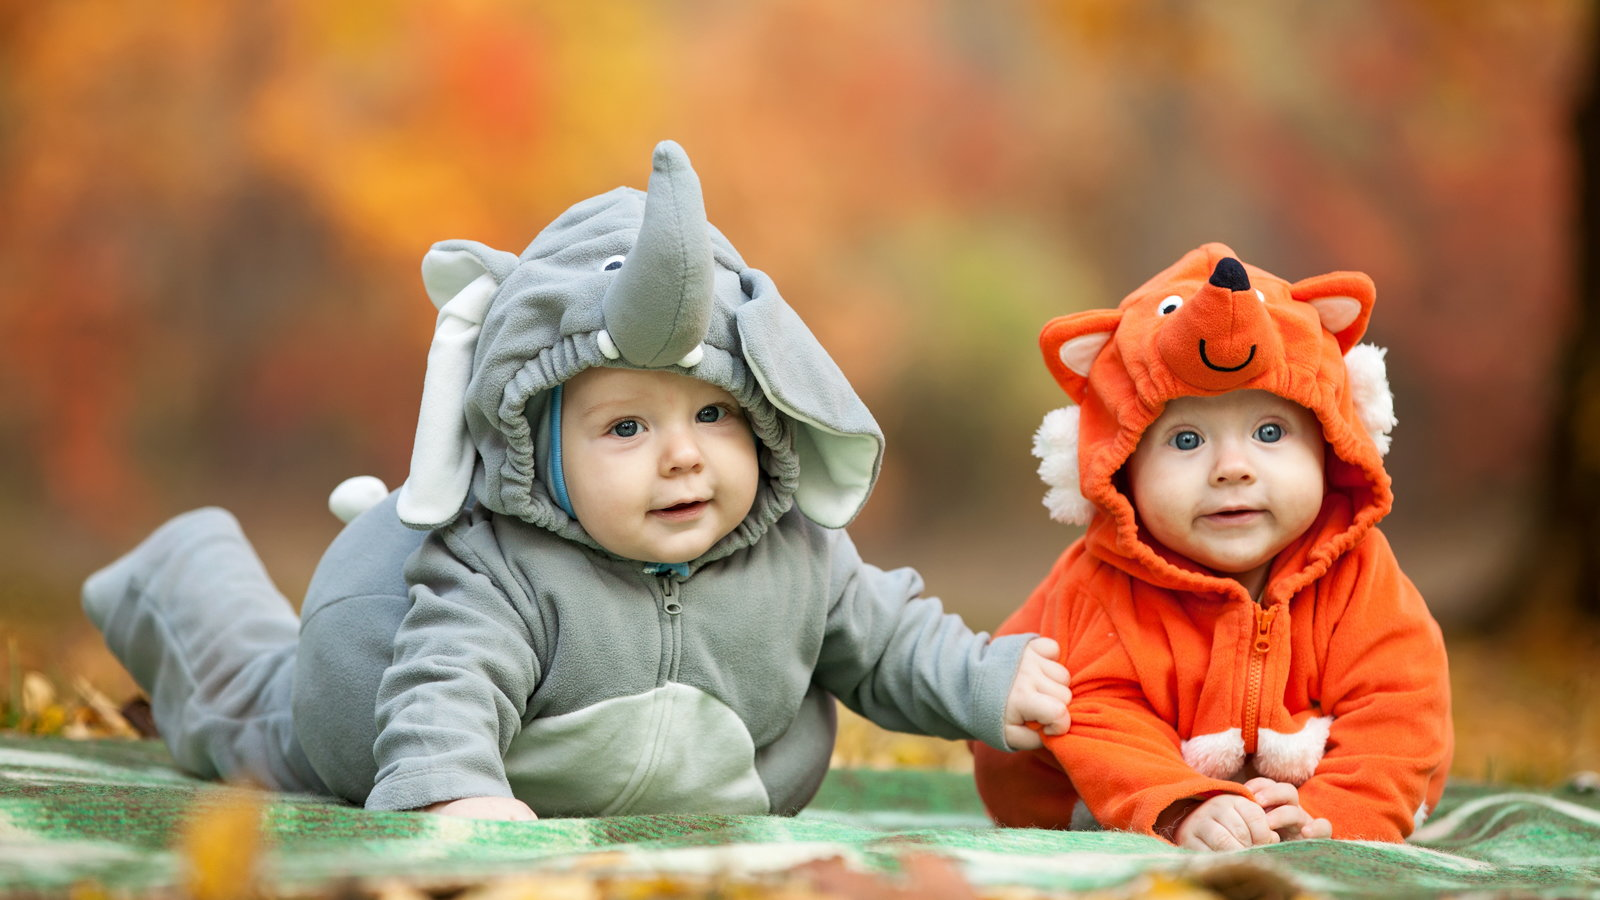 two babies dressed in Halloween costumes